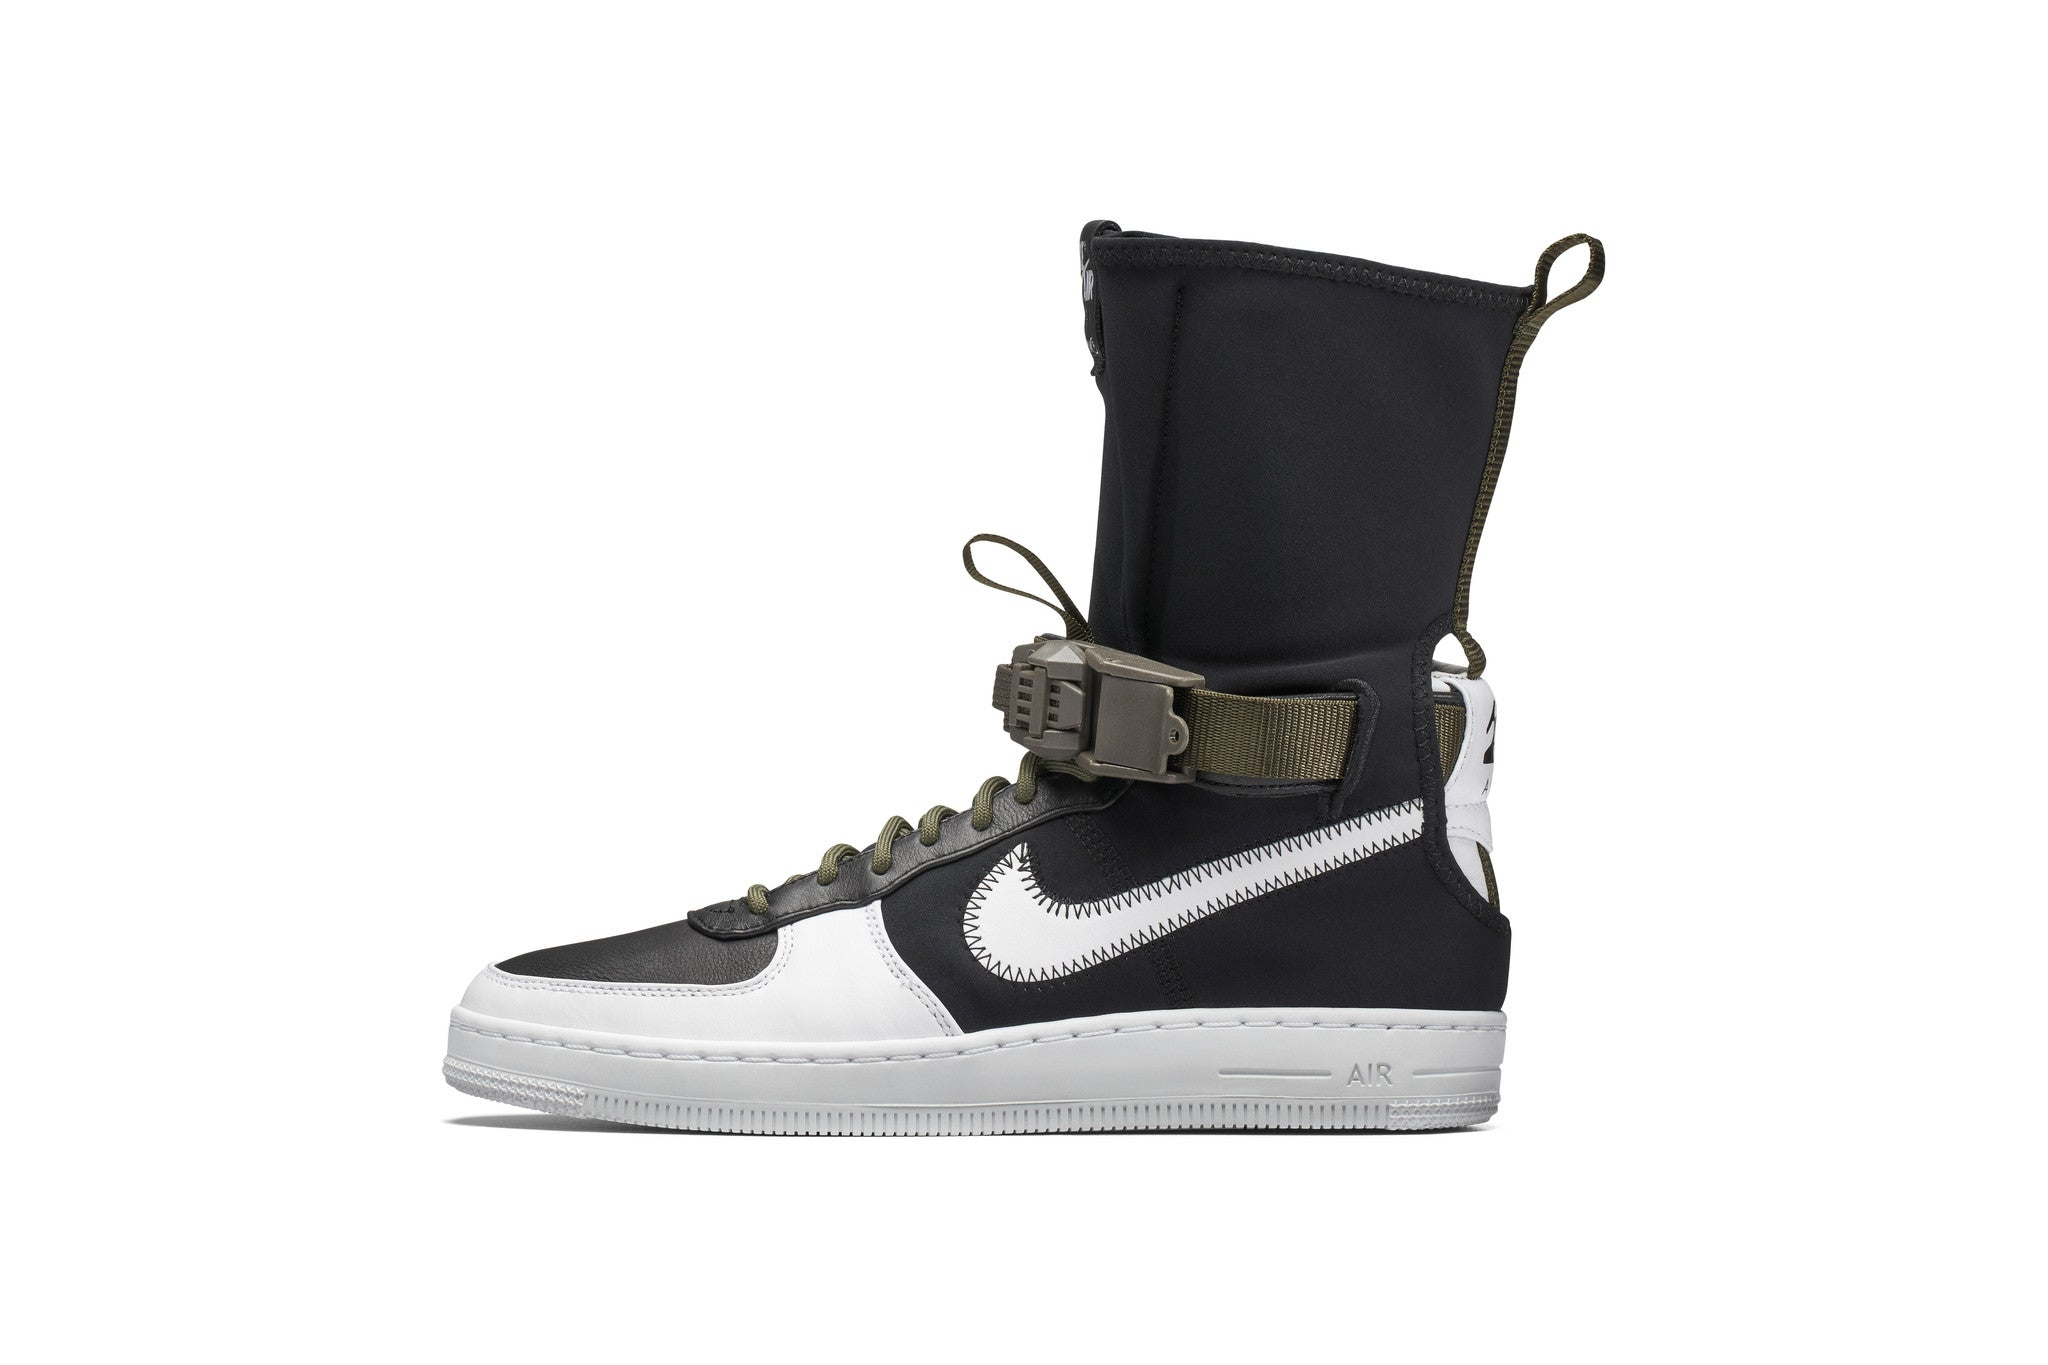 59036fc5900021 Acronym x Nike Lunar Force High Black   White   Medium DAF1-001 – Bodega